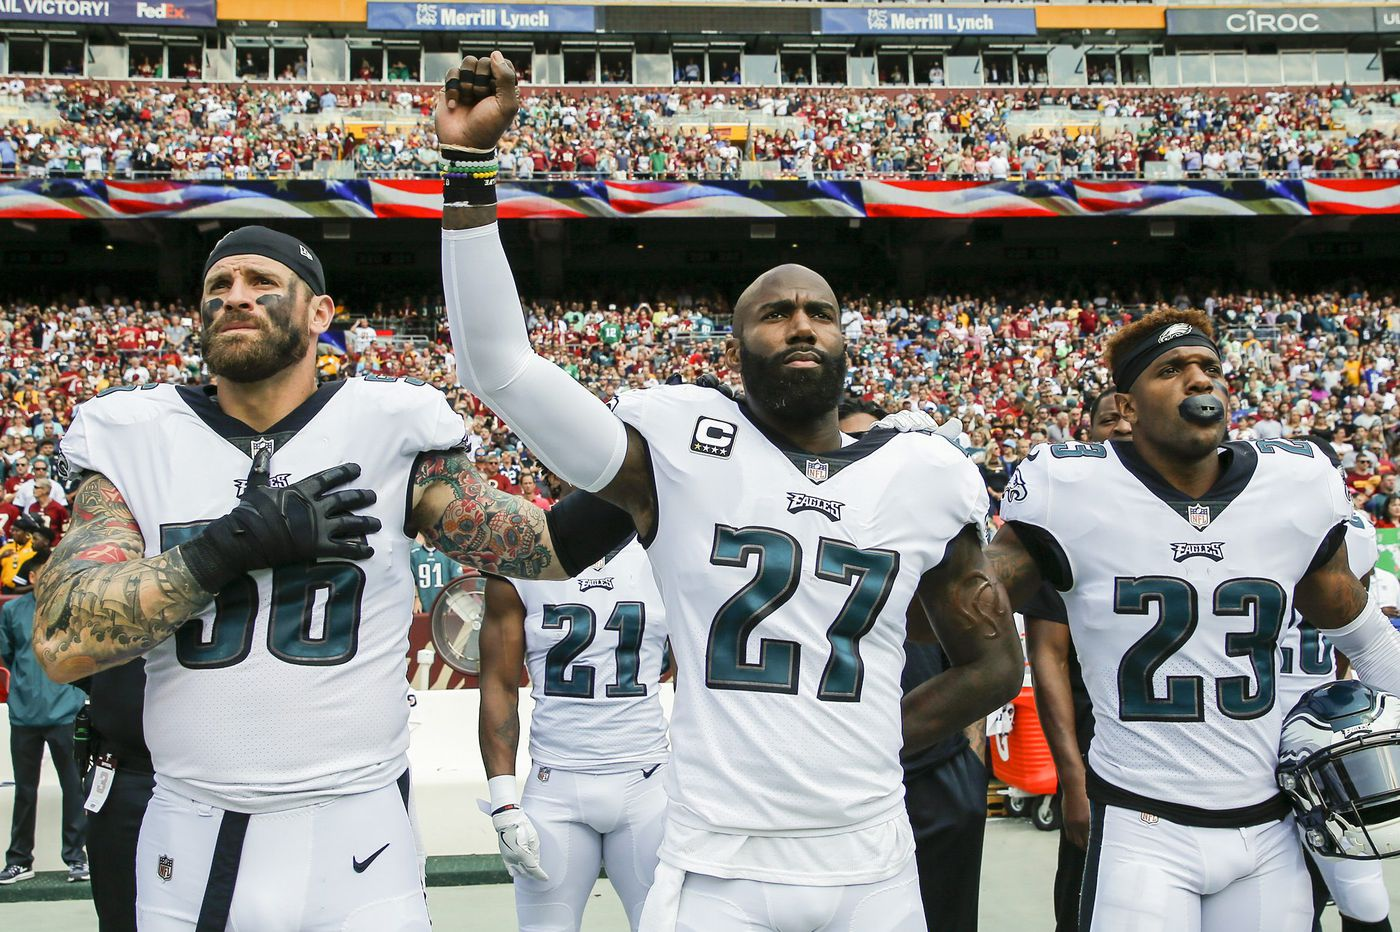 Every city in America needs a Malcolm Jenkins | Opinion